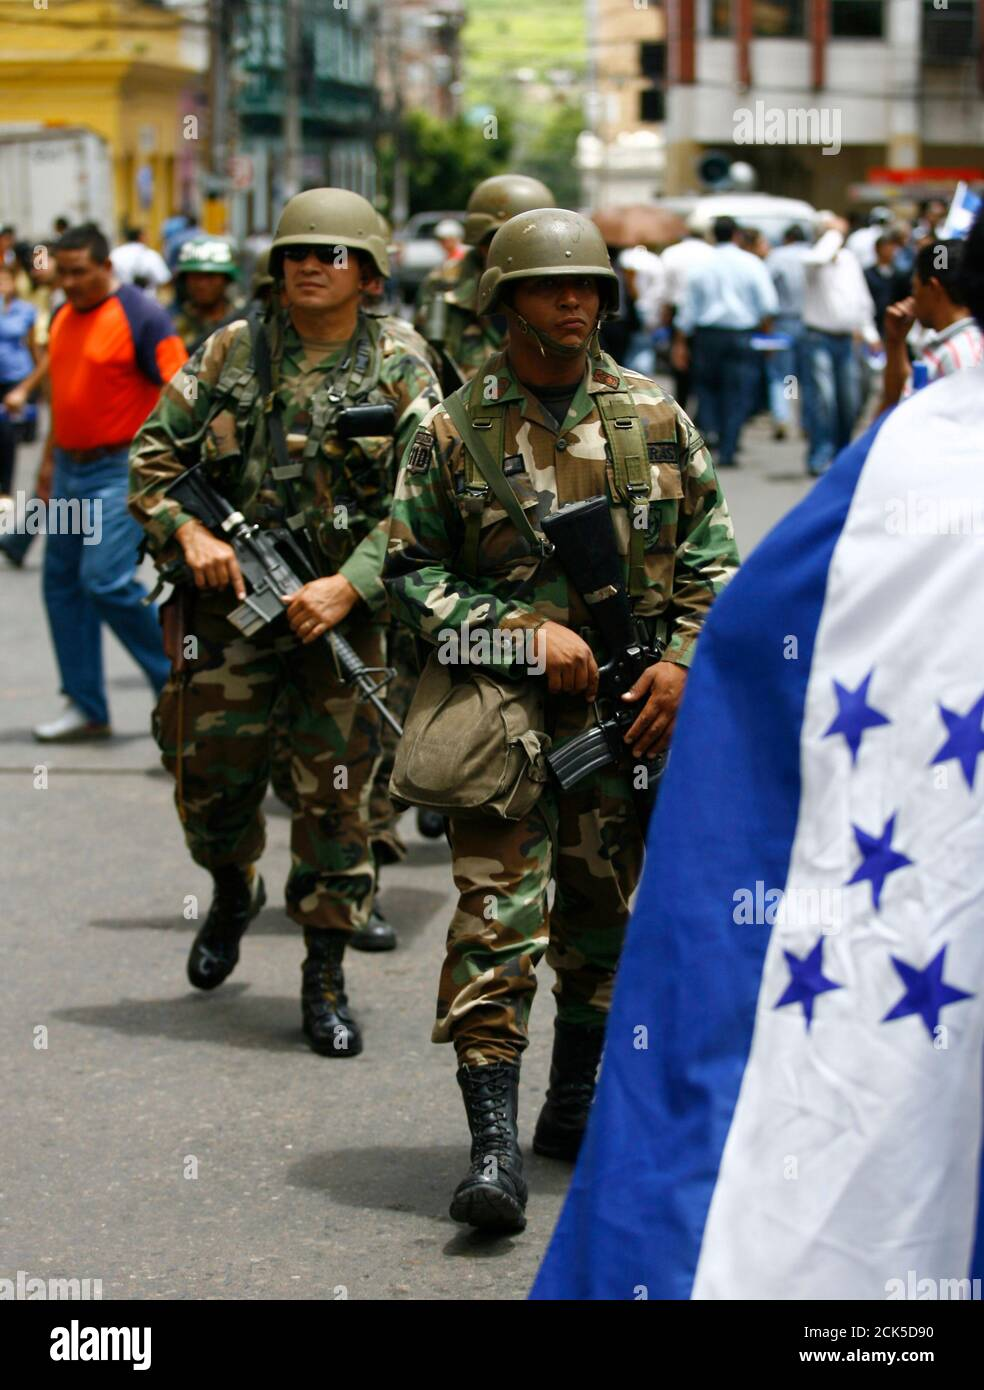 Soldiers on guard walk past supporters of Honduras' interim President Roberto Micheletti during a march in Tegucigalpa July 7, 2009. Ousted Honduran President Manuel Zelaya said on Tuesday he accepted the mediation of Costa Rican President Oscar Arias to try to solve his country's political crisis following the June 28 coup that ousted him. REUTERS/Henry Romero (HONDURAS POLITICS CONFLICT MILITARY) Stock Photo